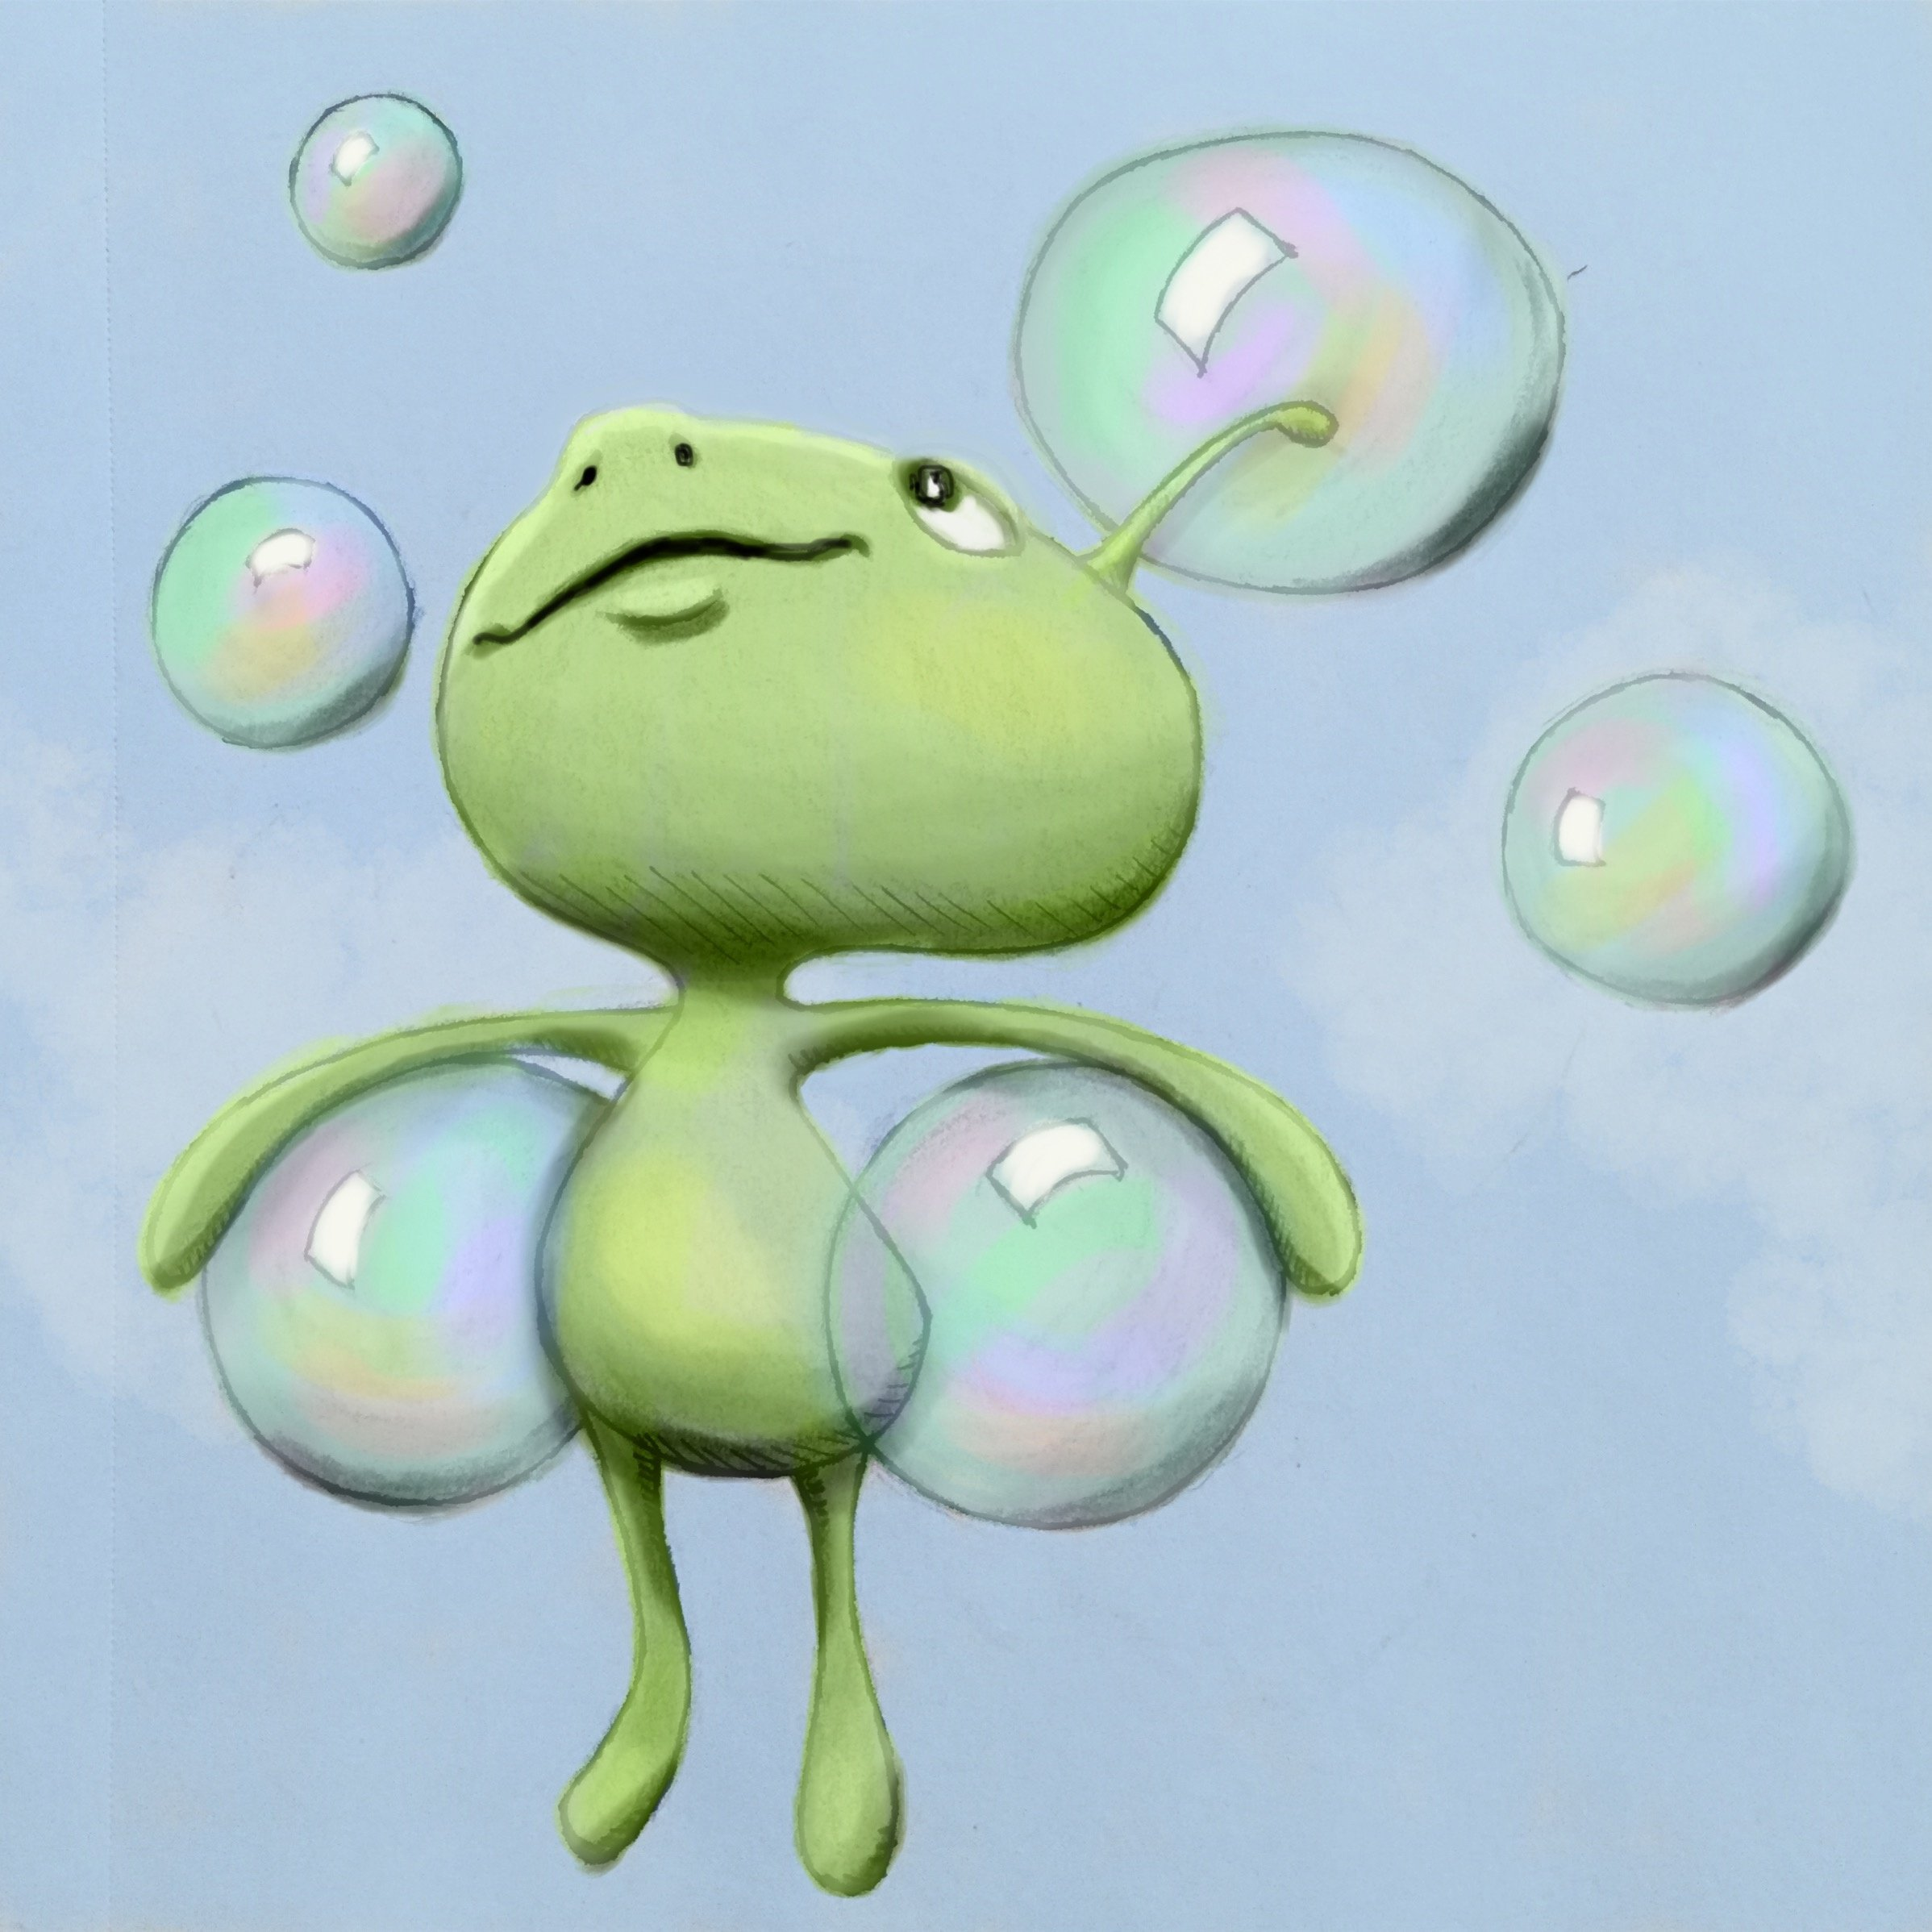 https://0201.nccdn.net/1_2/000/000/109/1d8/Bubble-Bug2-2396x2396.jpg